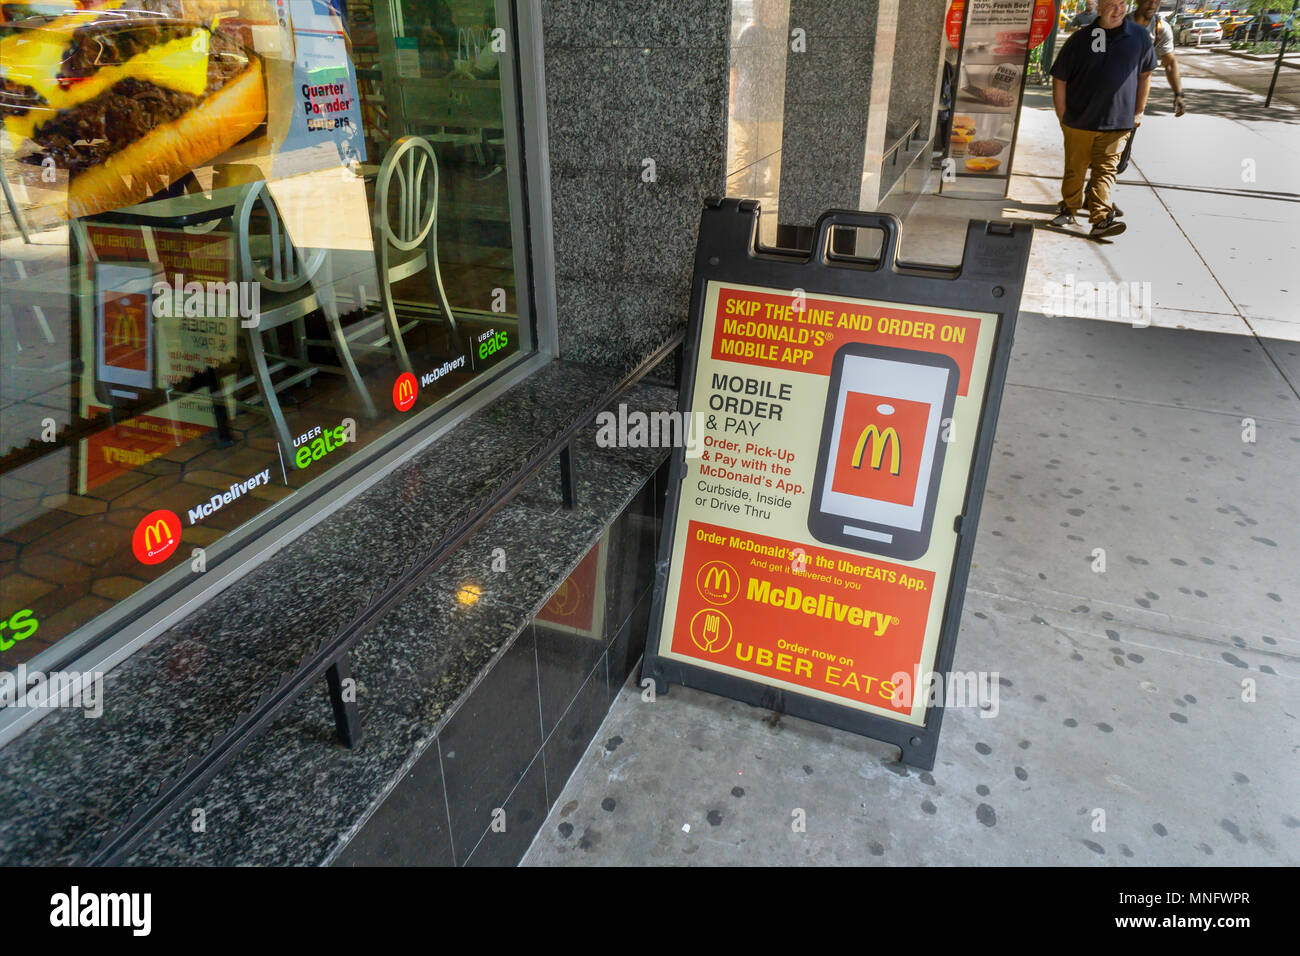 A McDonald's restaurant in New York displays signage promoting their